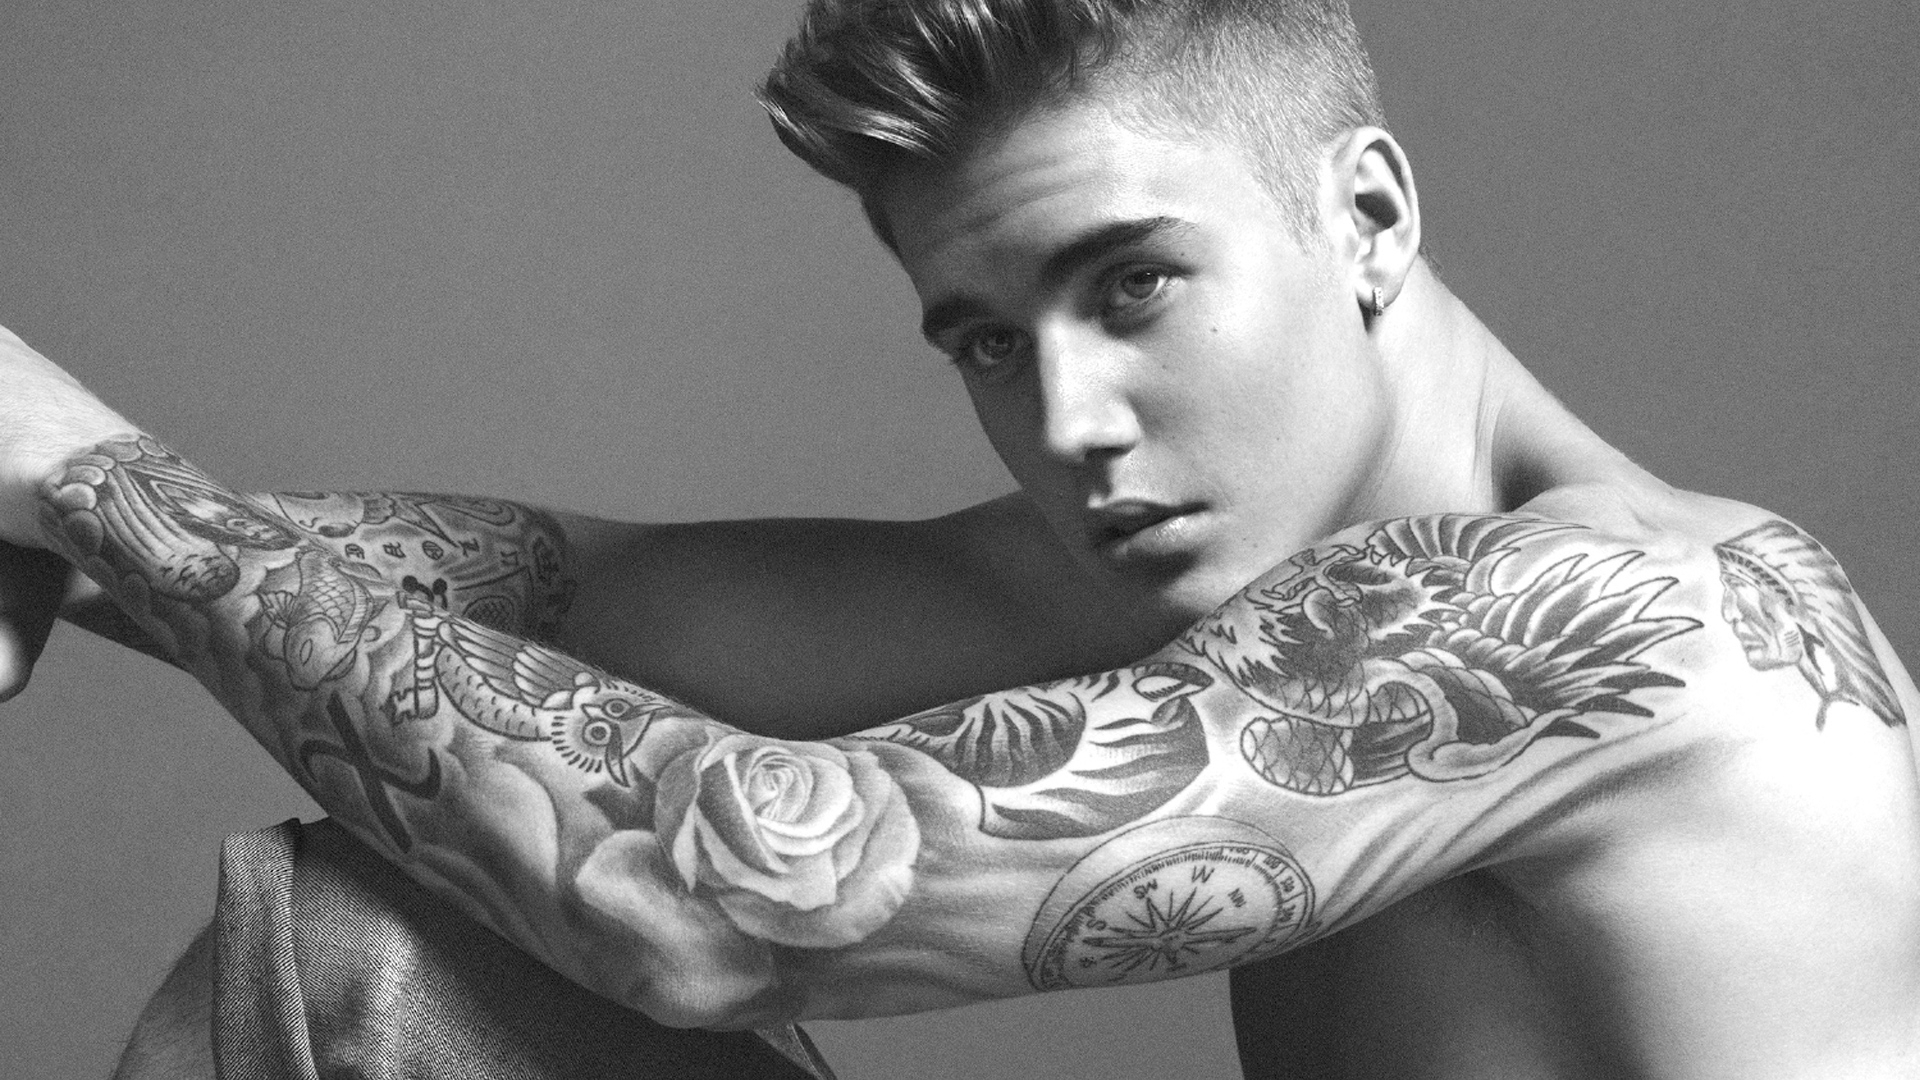 justin bieber 2015 wallpapers, amazing 50 wallpapers of justin